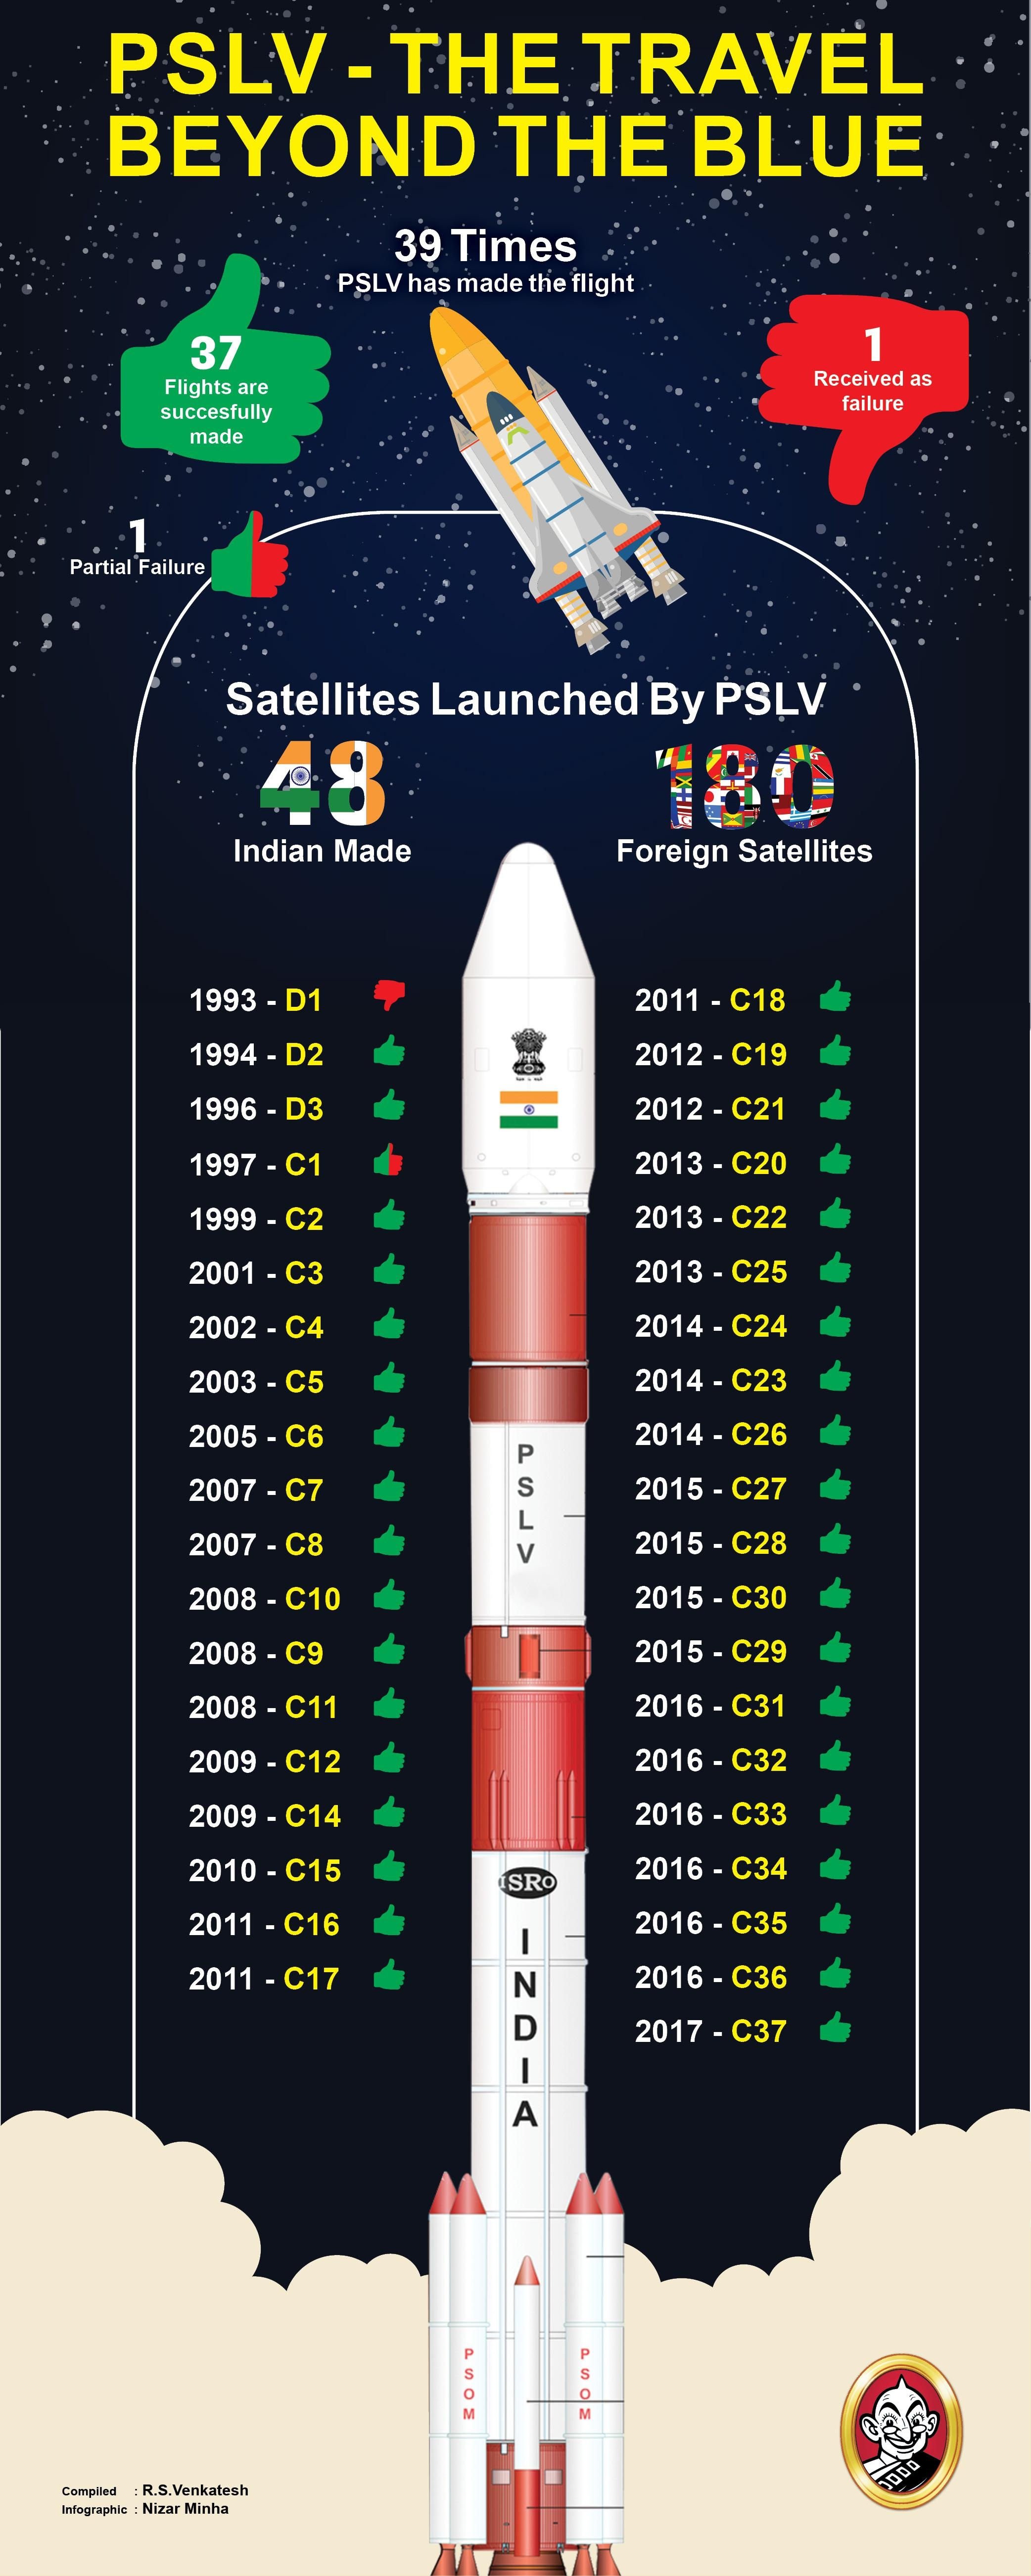 PSLV- The Travel Beyond the Blue!